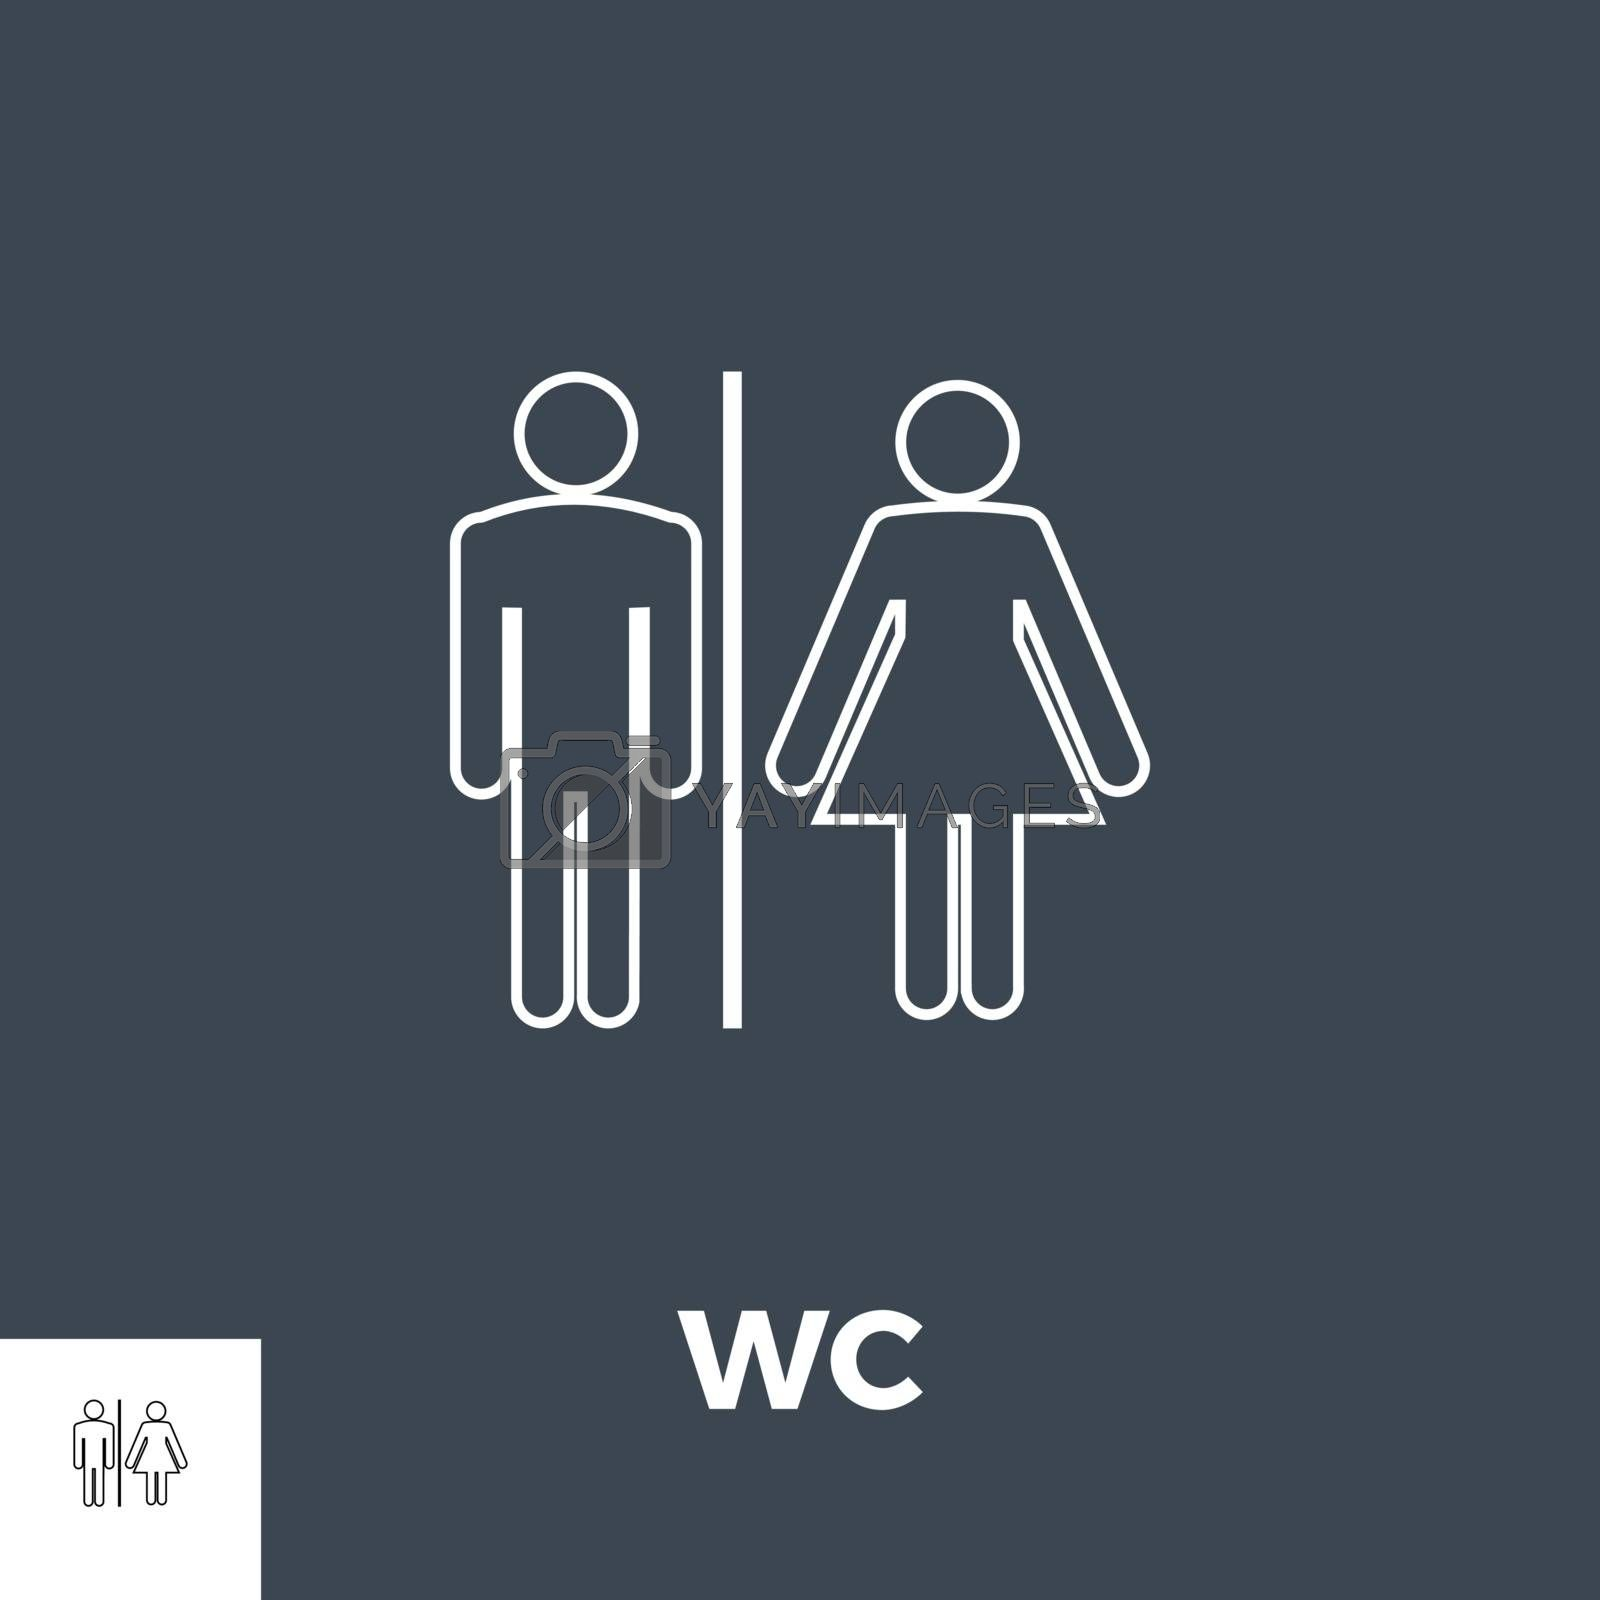 WC Vector Thin Line Icon. Isolated on Black Background. Vector Illustration.